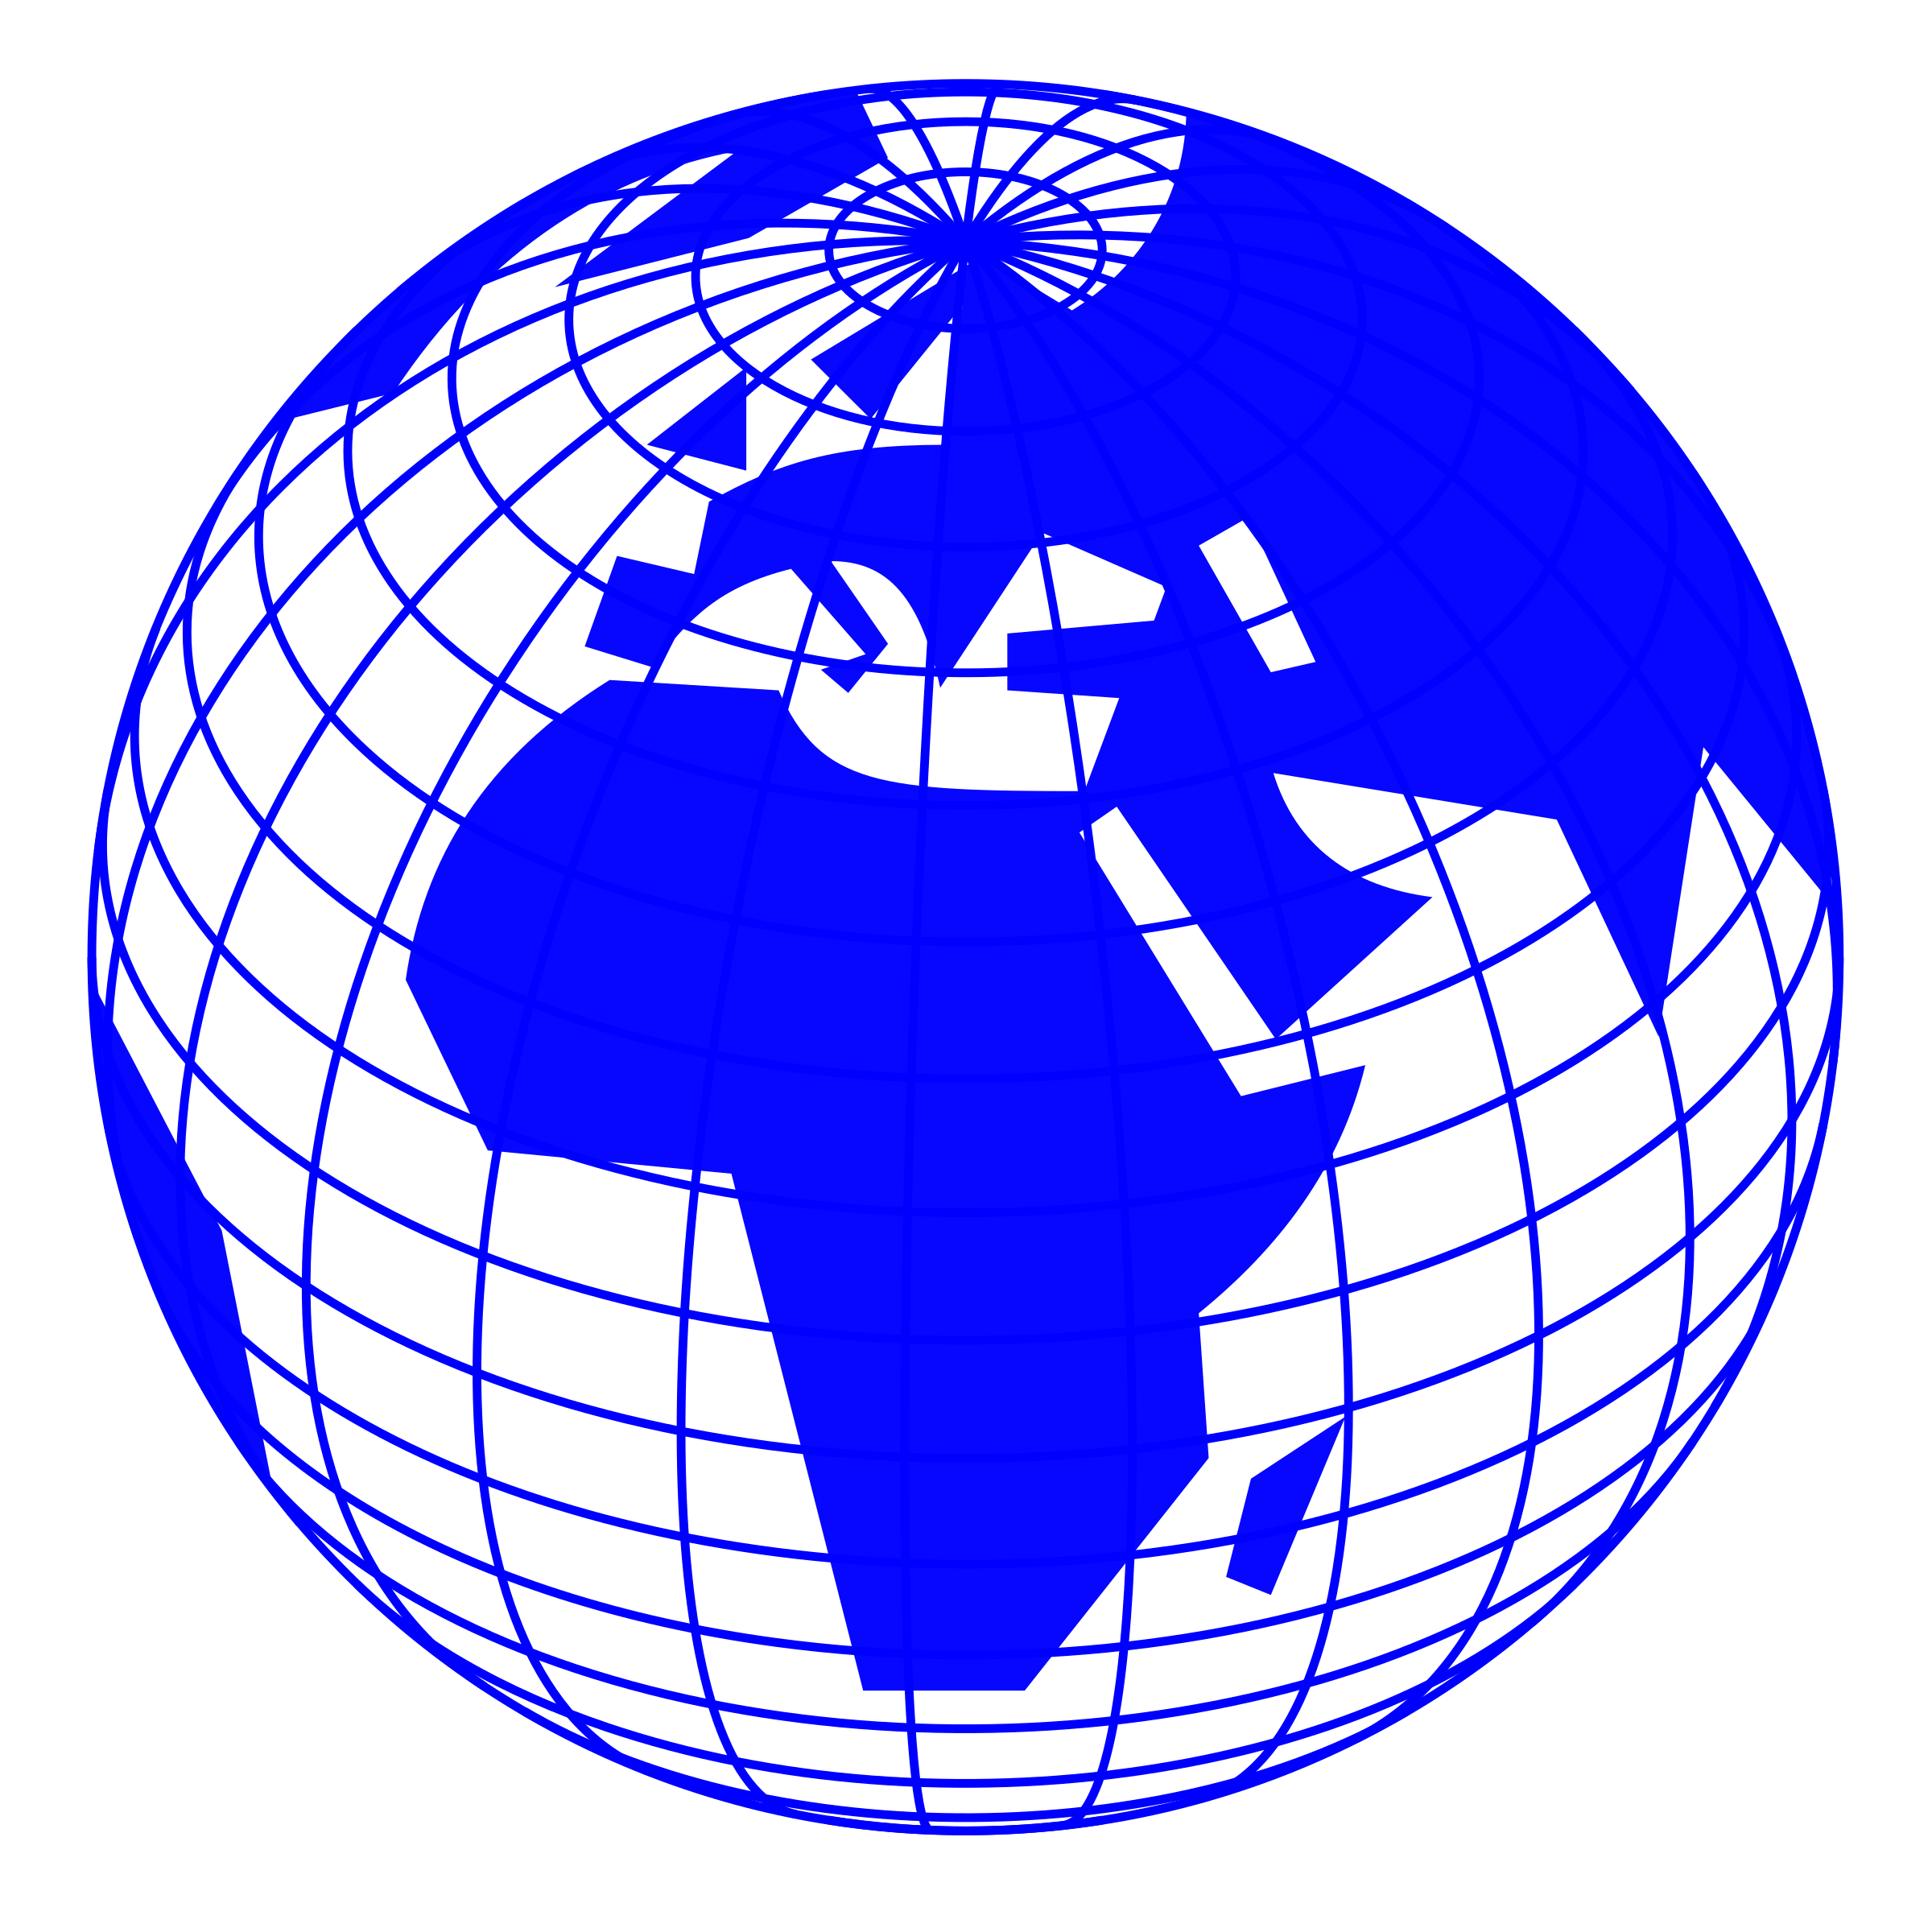 Diversity drawing global issue. Globe d icons png